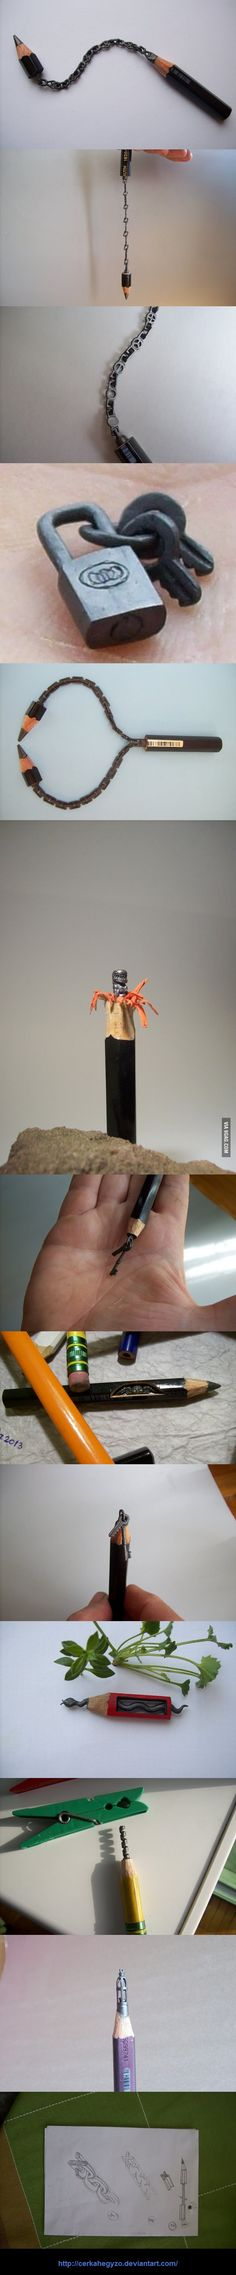 Pencil Art Amazingly intricate pencil lead carving's by Cerkahegyzo - More memes, funny videos and pics on Diorama, Pencil Carving, Fantastic Art, Awesome, Pencil Art, Unique Art, Creative Art, Sculpture Art, Cool Art